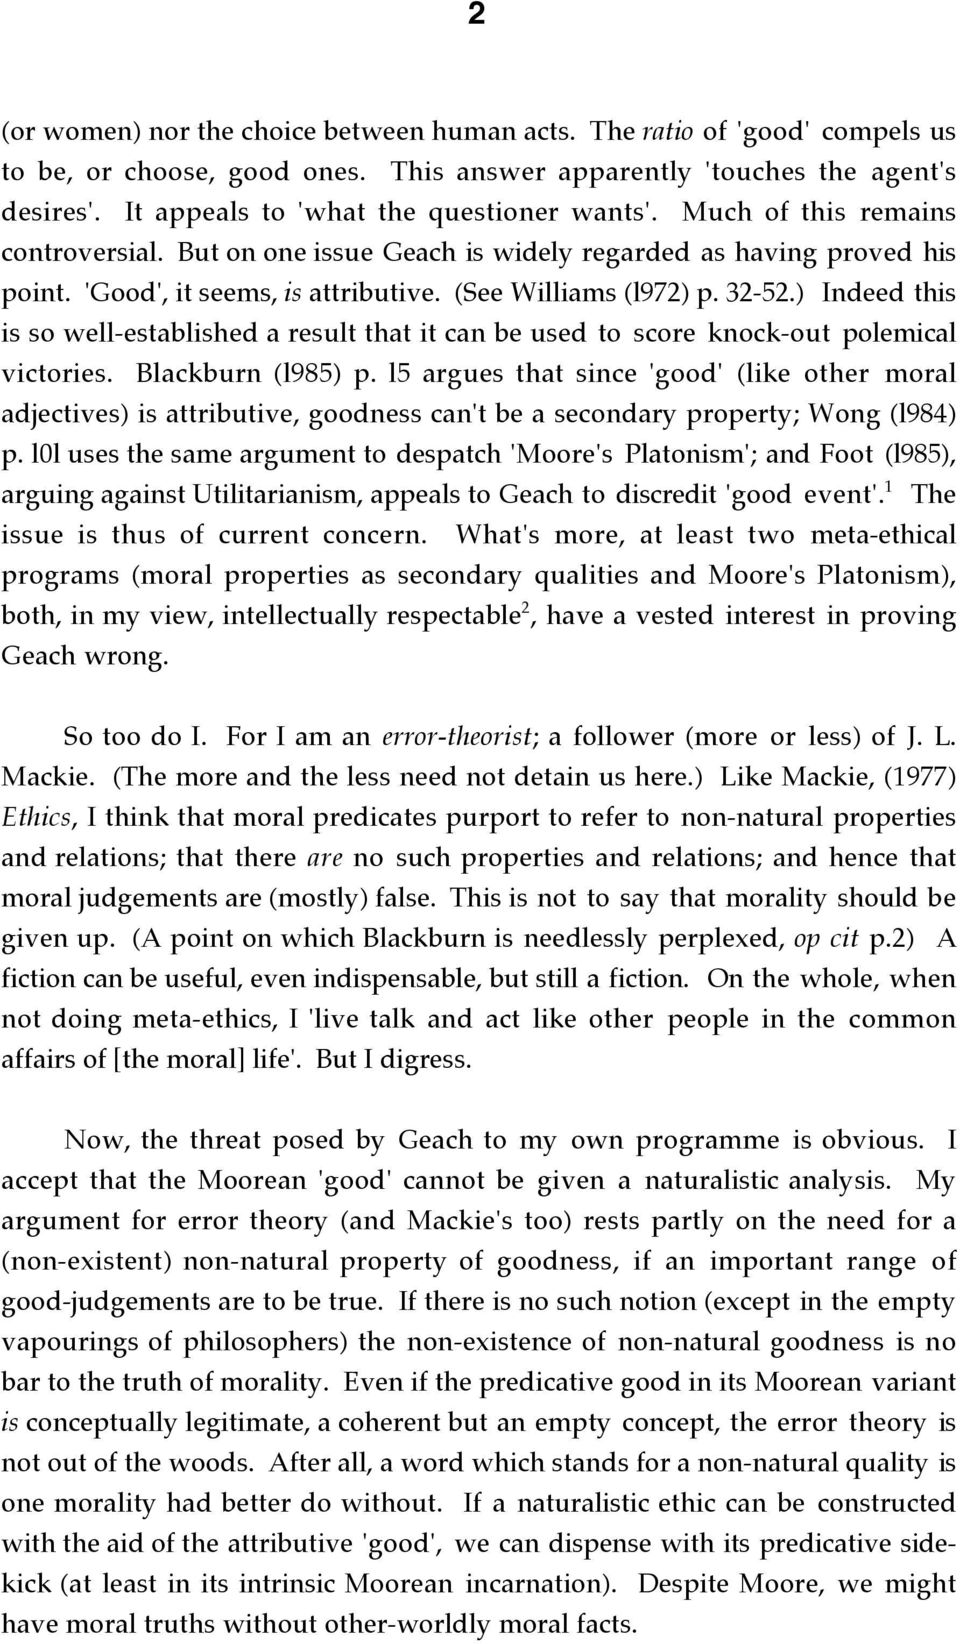 (See Williams (l972) p. 32-52.) Indeed this is so well-established a result that it can be used to score knock-out polemical victories. Blackburn (l985) p.